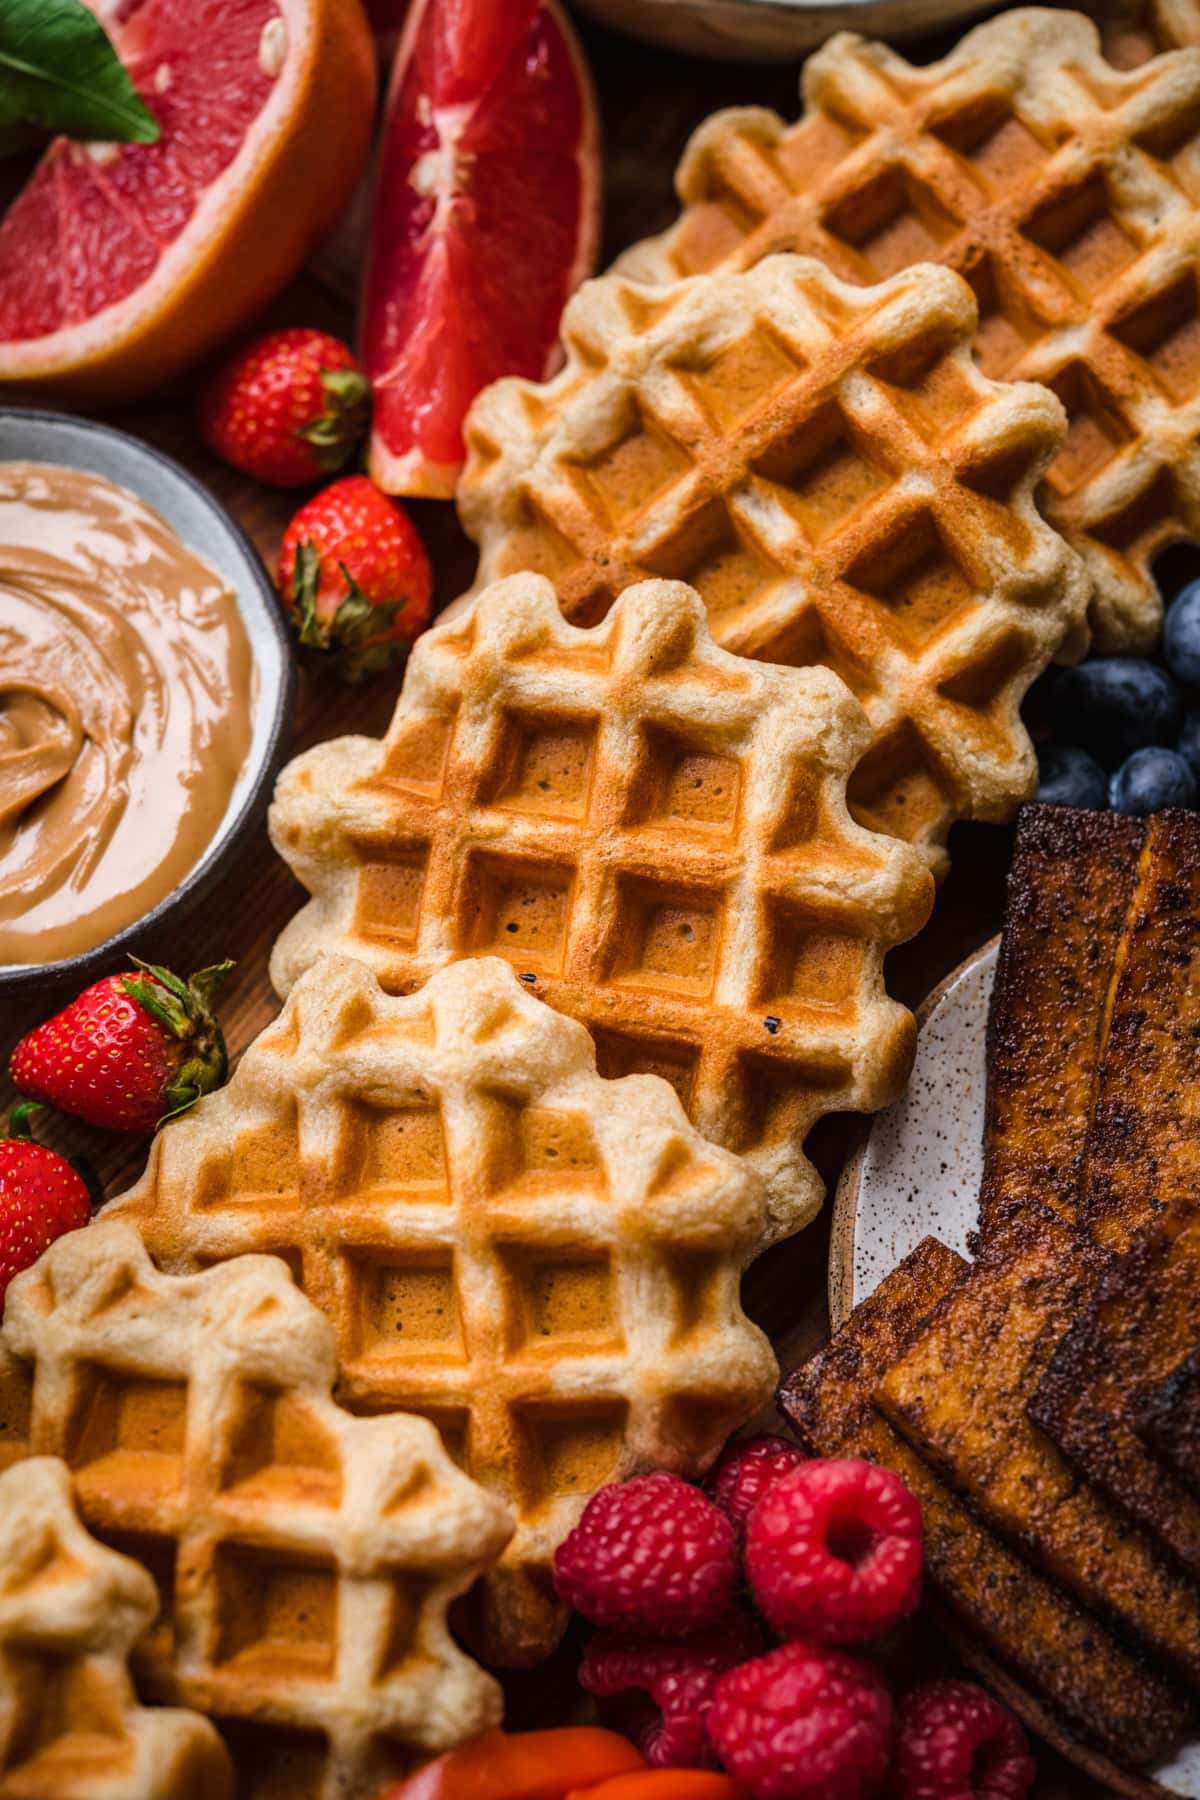 close up view of waffles on waffle board.